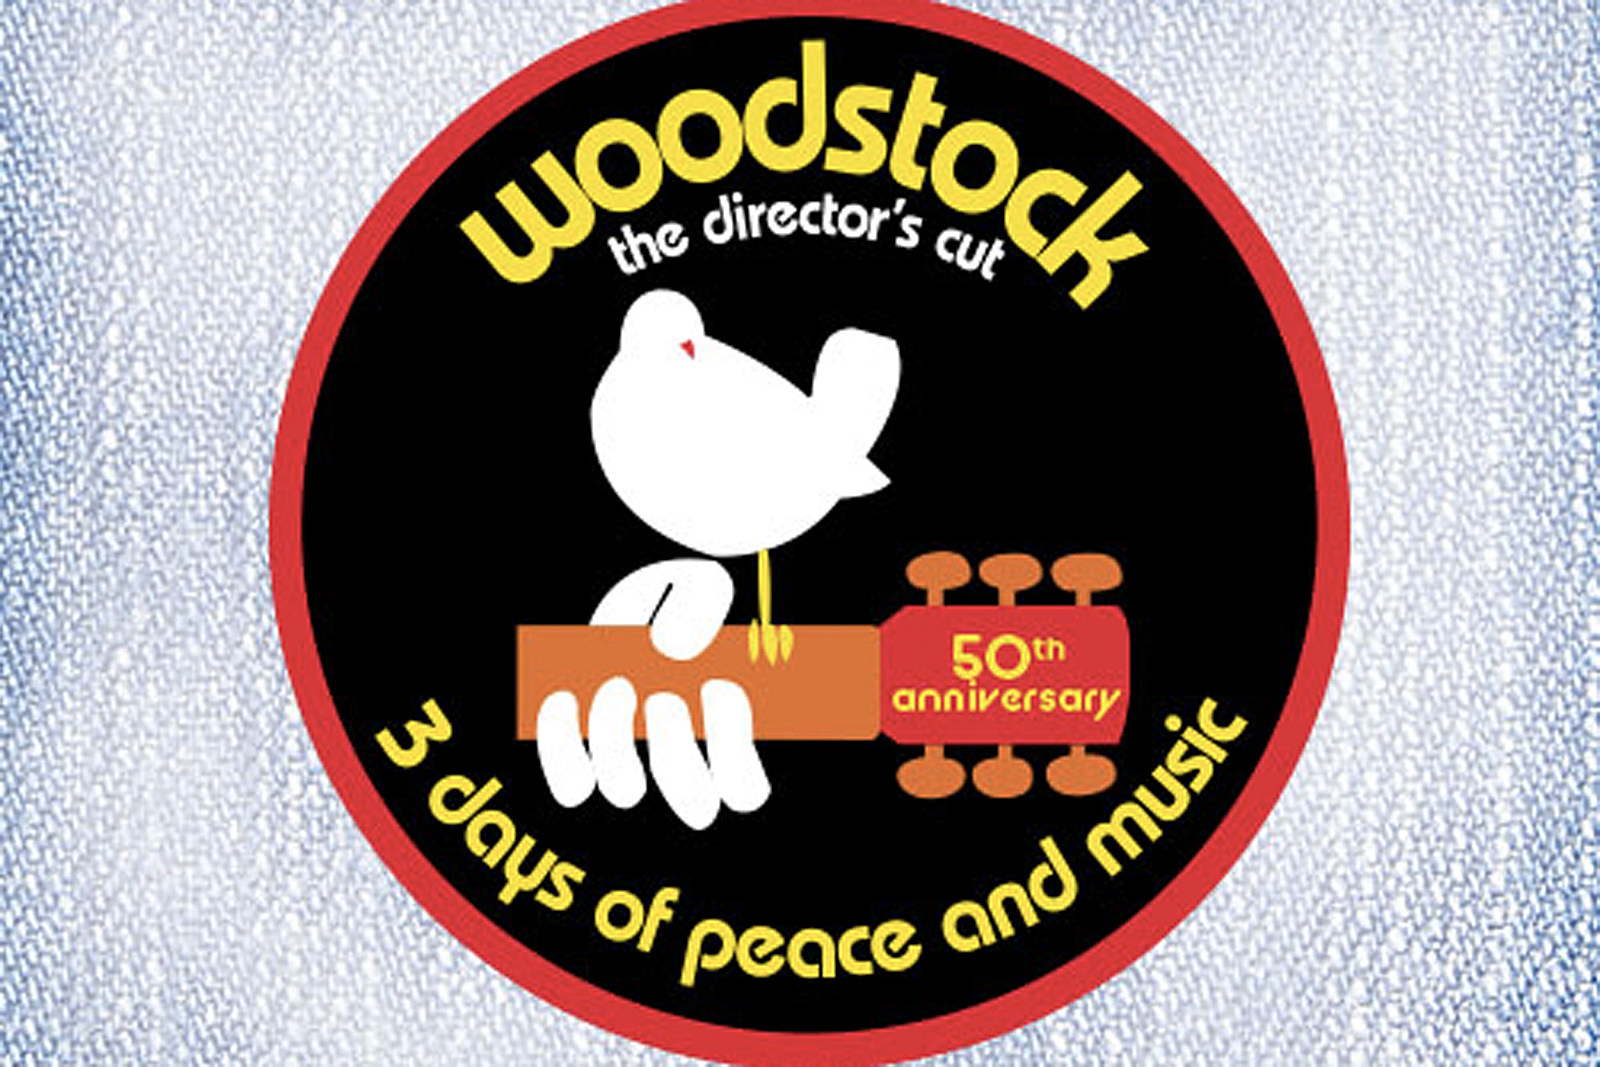 'Woodstock' Movie to Be Shown in Theaters for One Night